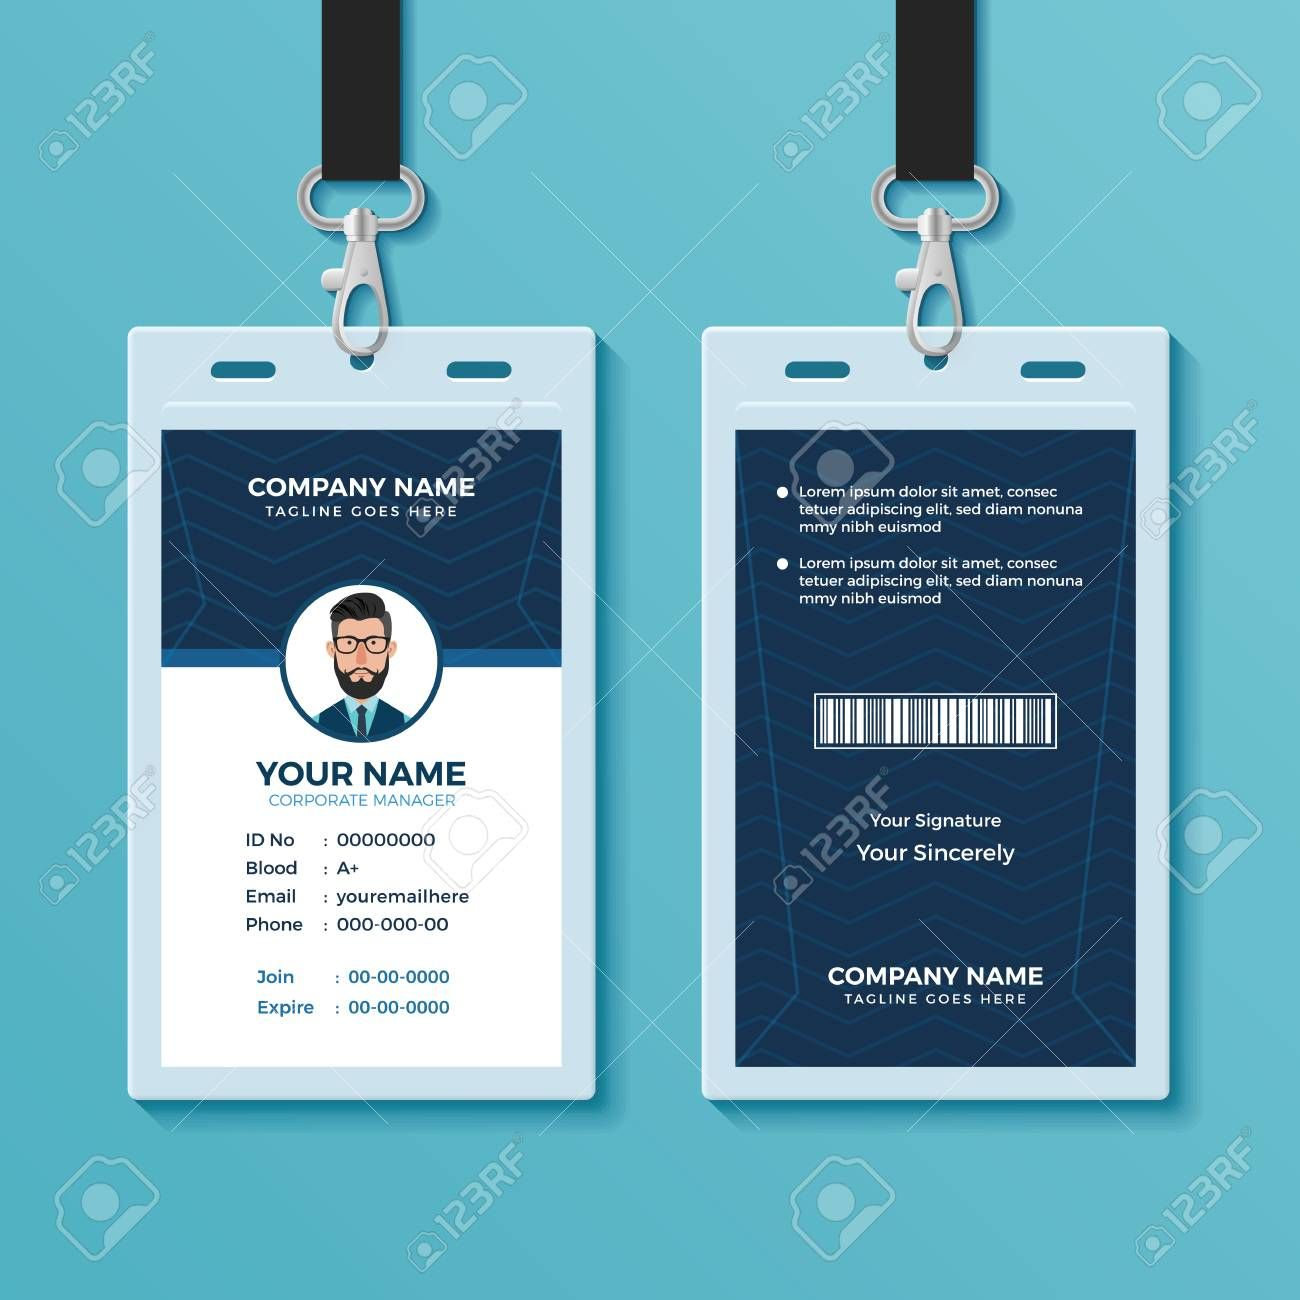 Modern And Clean Id Card Design Template With Portrait Id Card Template Cumed Org Id Card Template Card Design Business Card Mock Up